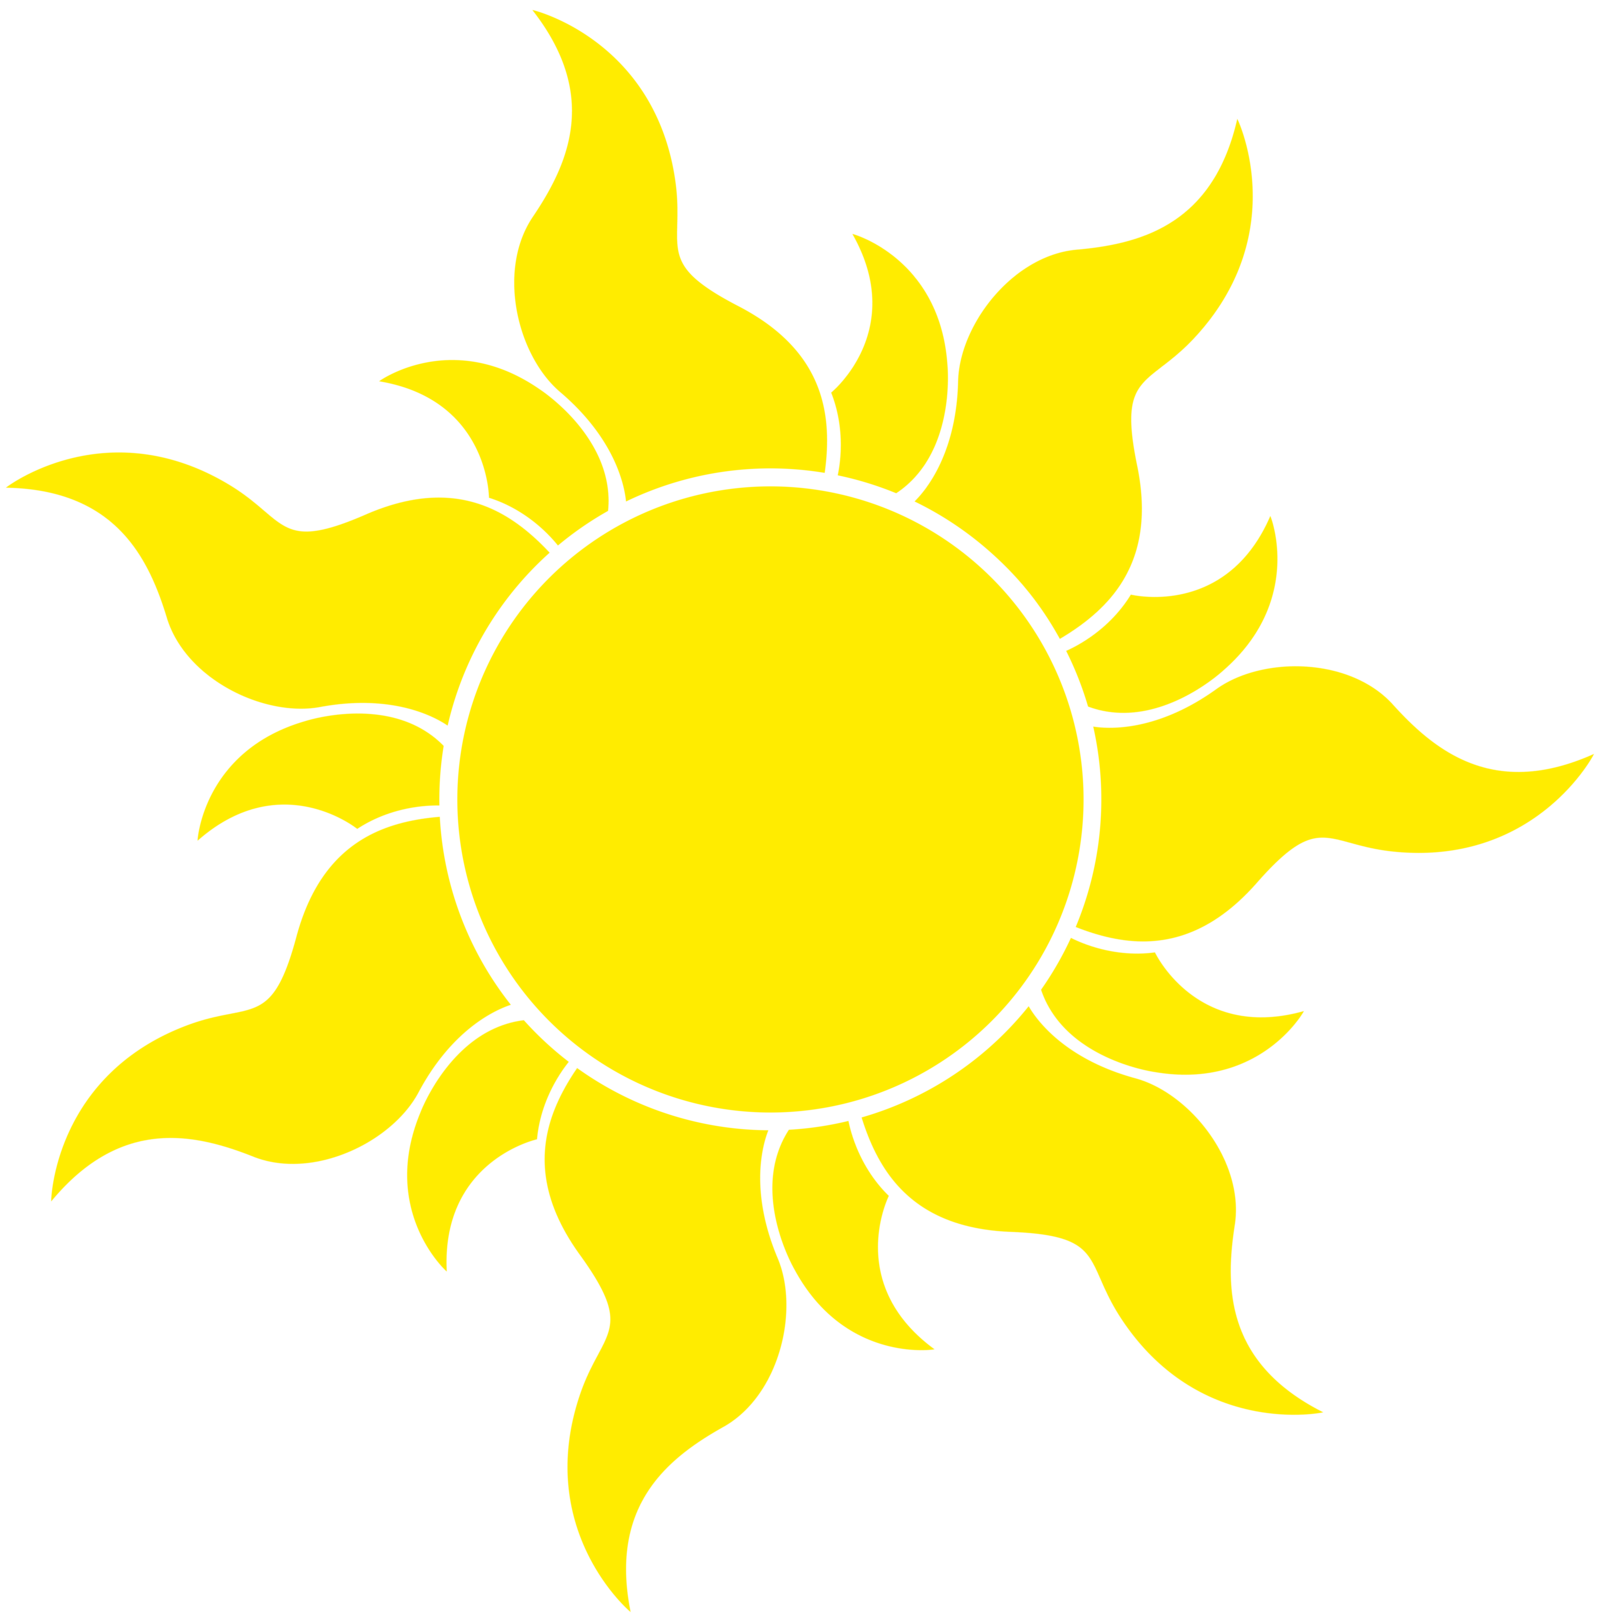 Tangled sun symbol huge by clipart panda free clipart images clipart info buycottarizona Images